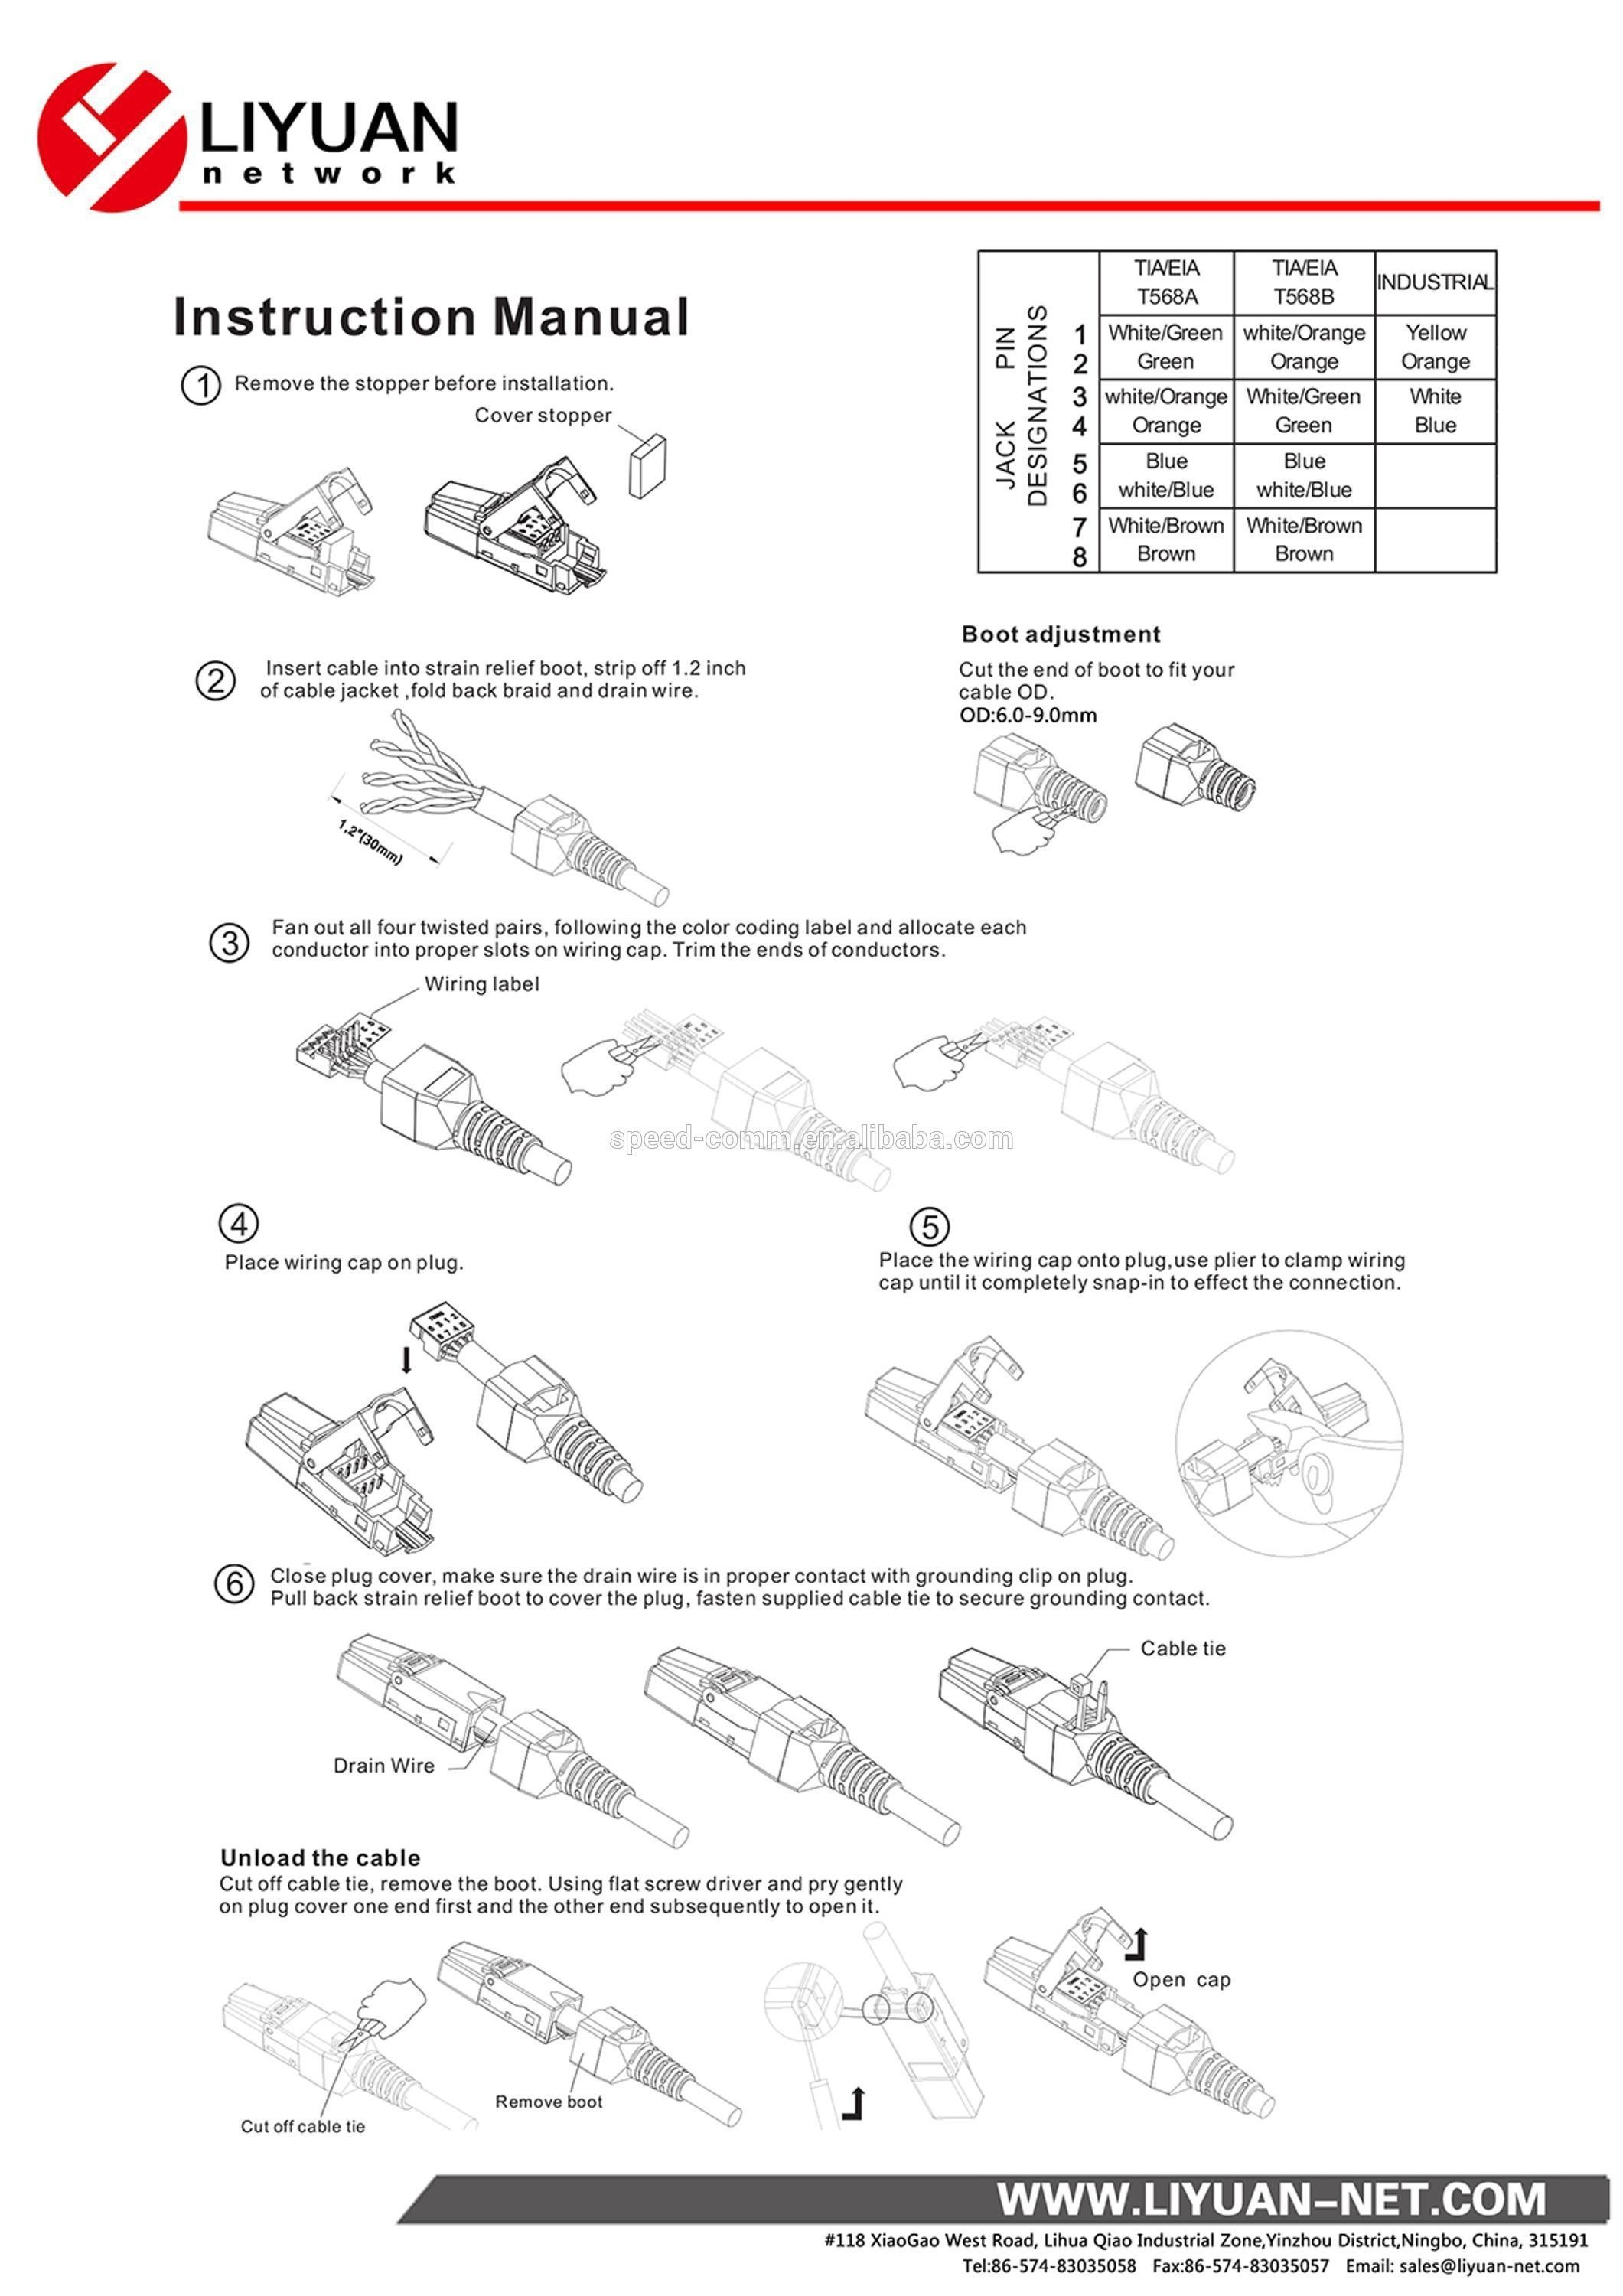 Wiring Diagram For A Cat5 Cable Inspirationa Cable Wire Diagram Best Cat5e Wire Diagram New Ethernet Cable